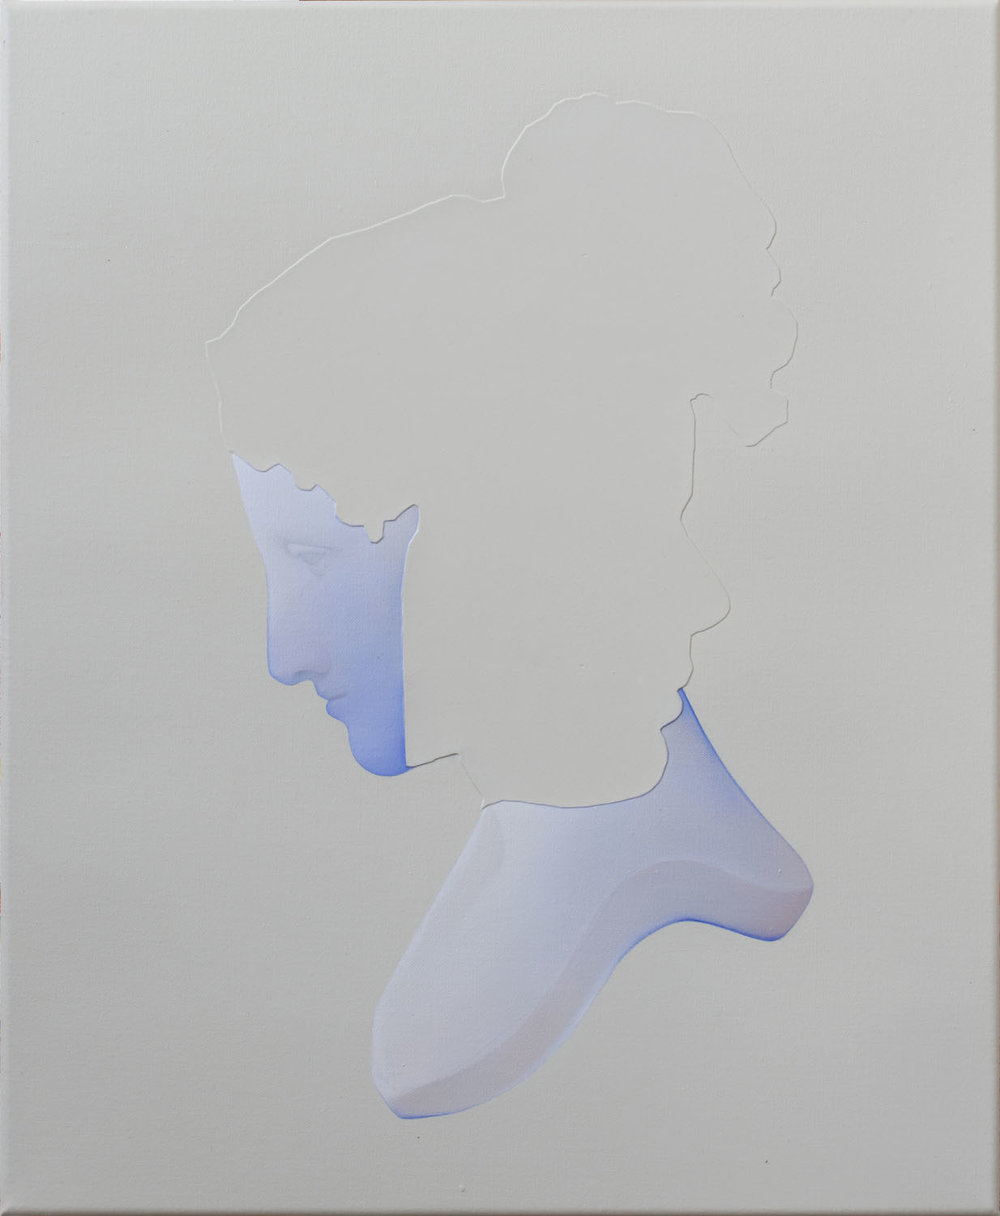 Vivian Greven   VV,IX , 2018  Oil and acrylic on canvas  21.625 x 17.375 inches